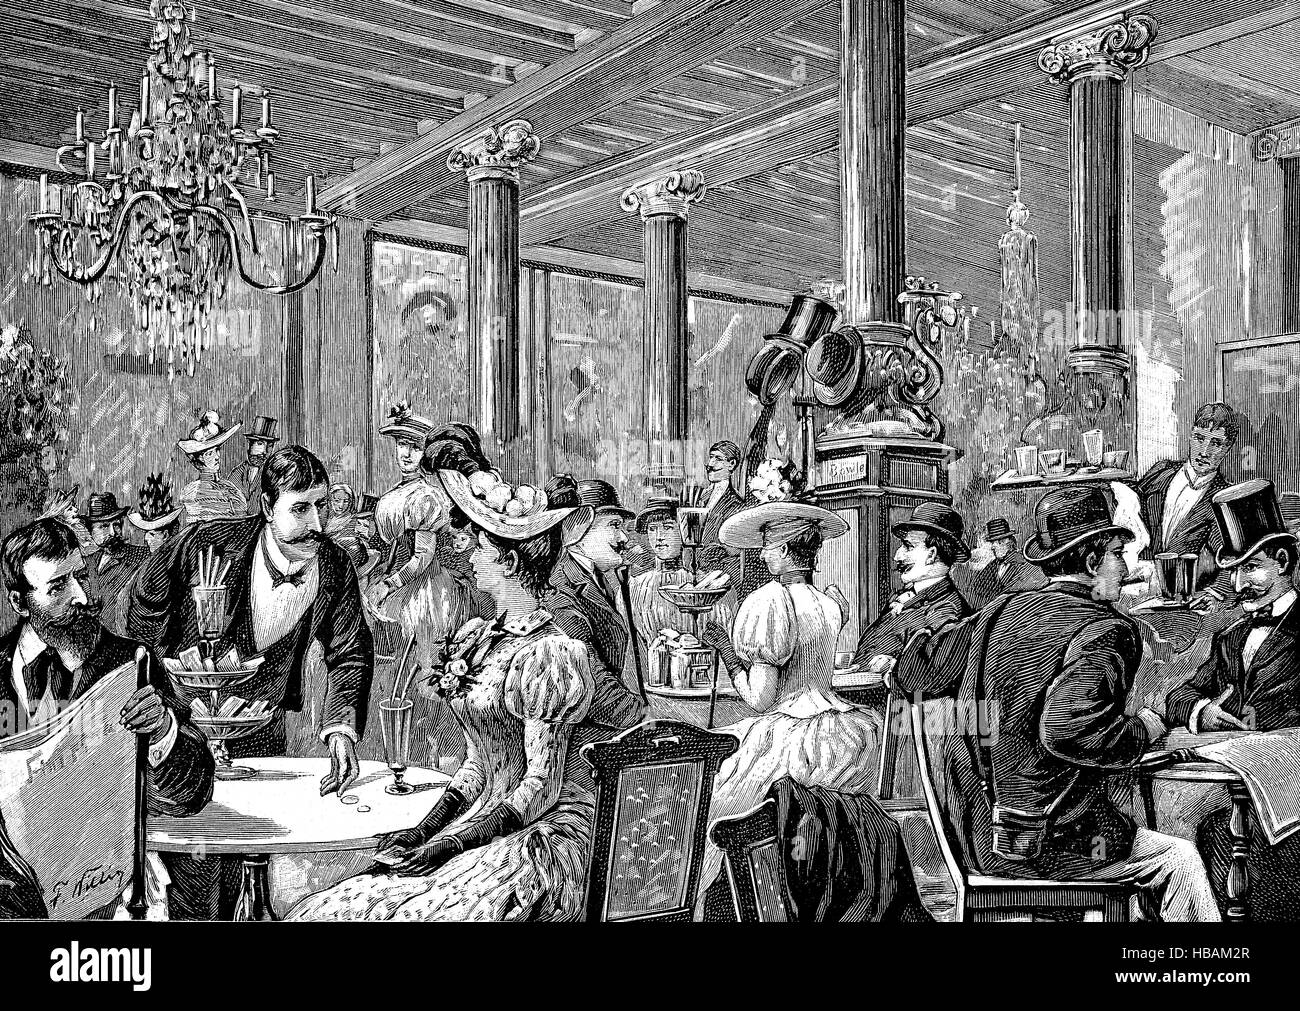 the restaurant Cafe Bauer in Berlin, Germany, hictorical illustration from 1880 - Stock Image